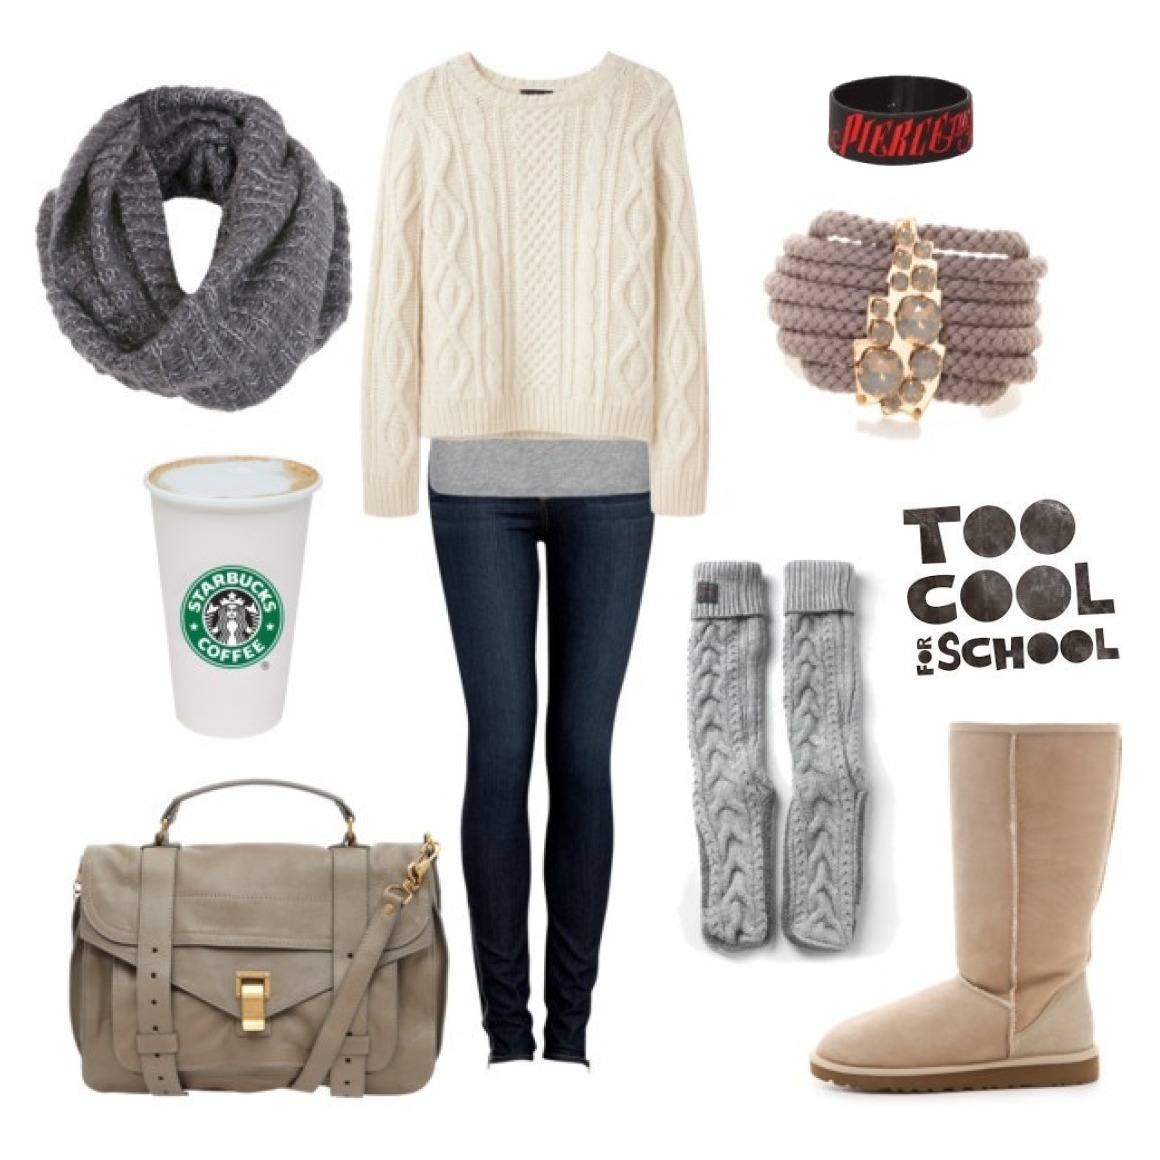 The Various Options For Cute School Outfits  Cute Winter Outfits Polyvore  Images For Cute Outfits